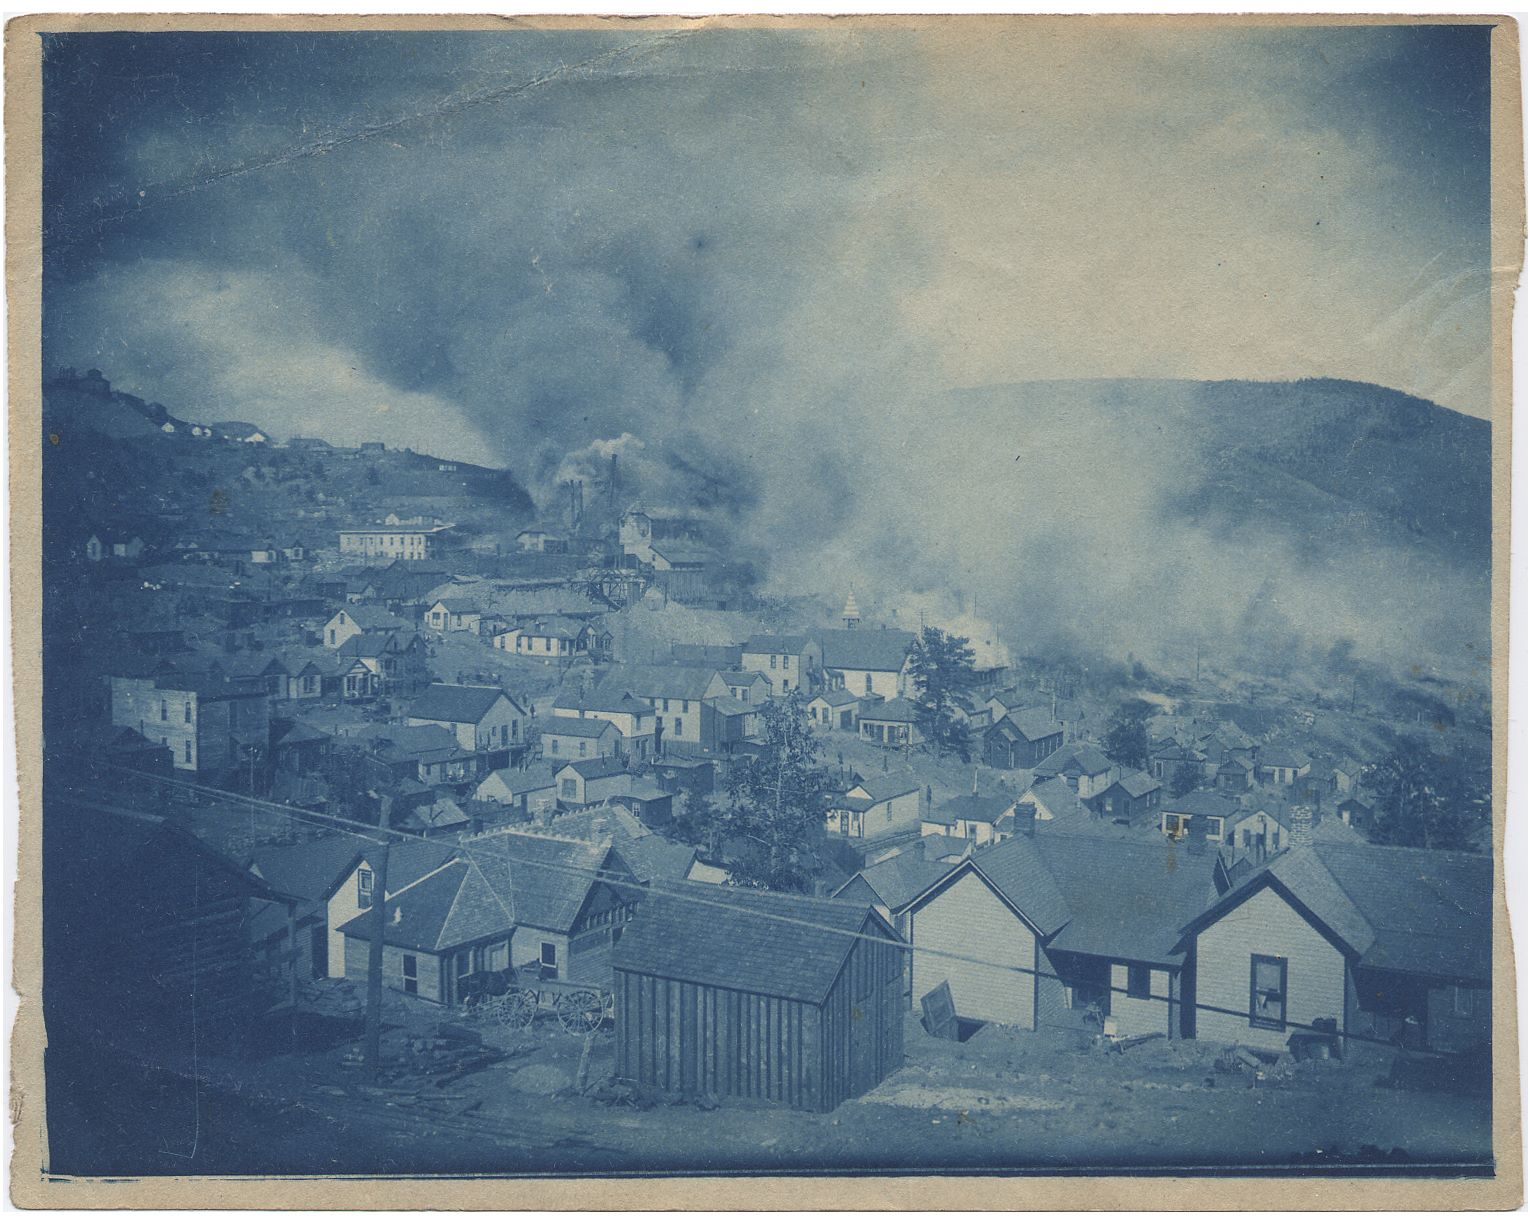 Yet another view of the Victor fire as seen from someplace along the 7th street, looking sort of northeast towards the burning town and the burning Gold Coin mine, this fateful Monday in August of 1899! The paper quality leaves much to desire, but for someone, this was a memory to hold on to and hundred or so years later it founds it way to me here in Norway.